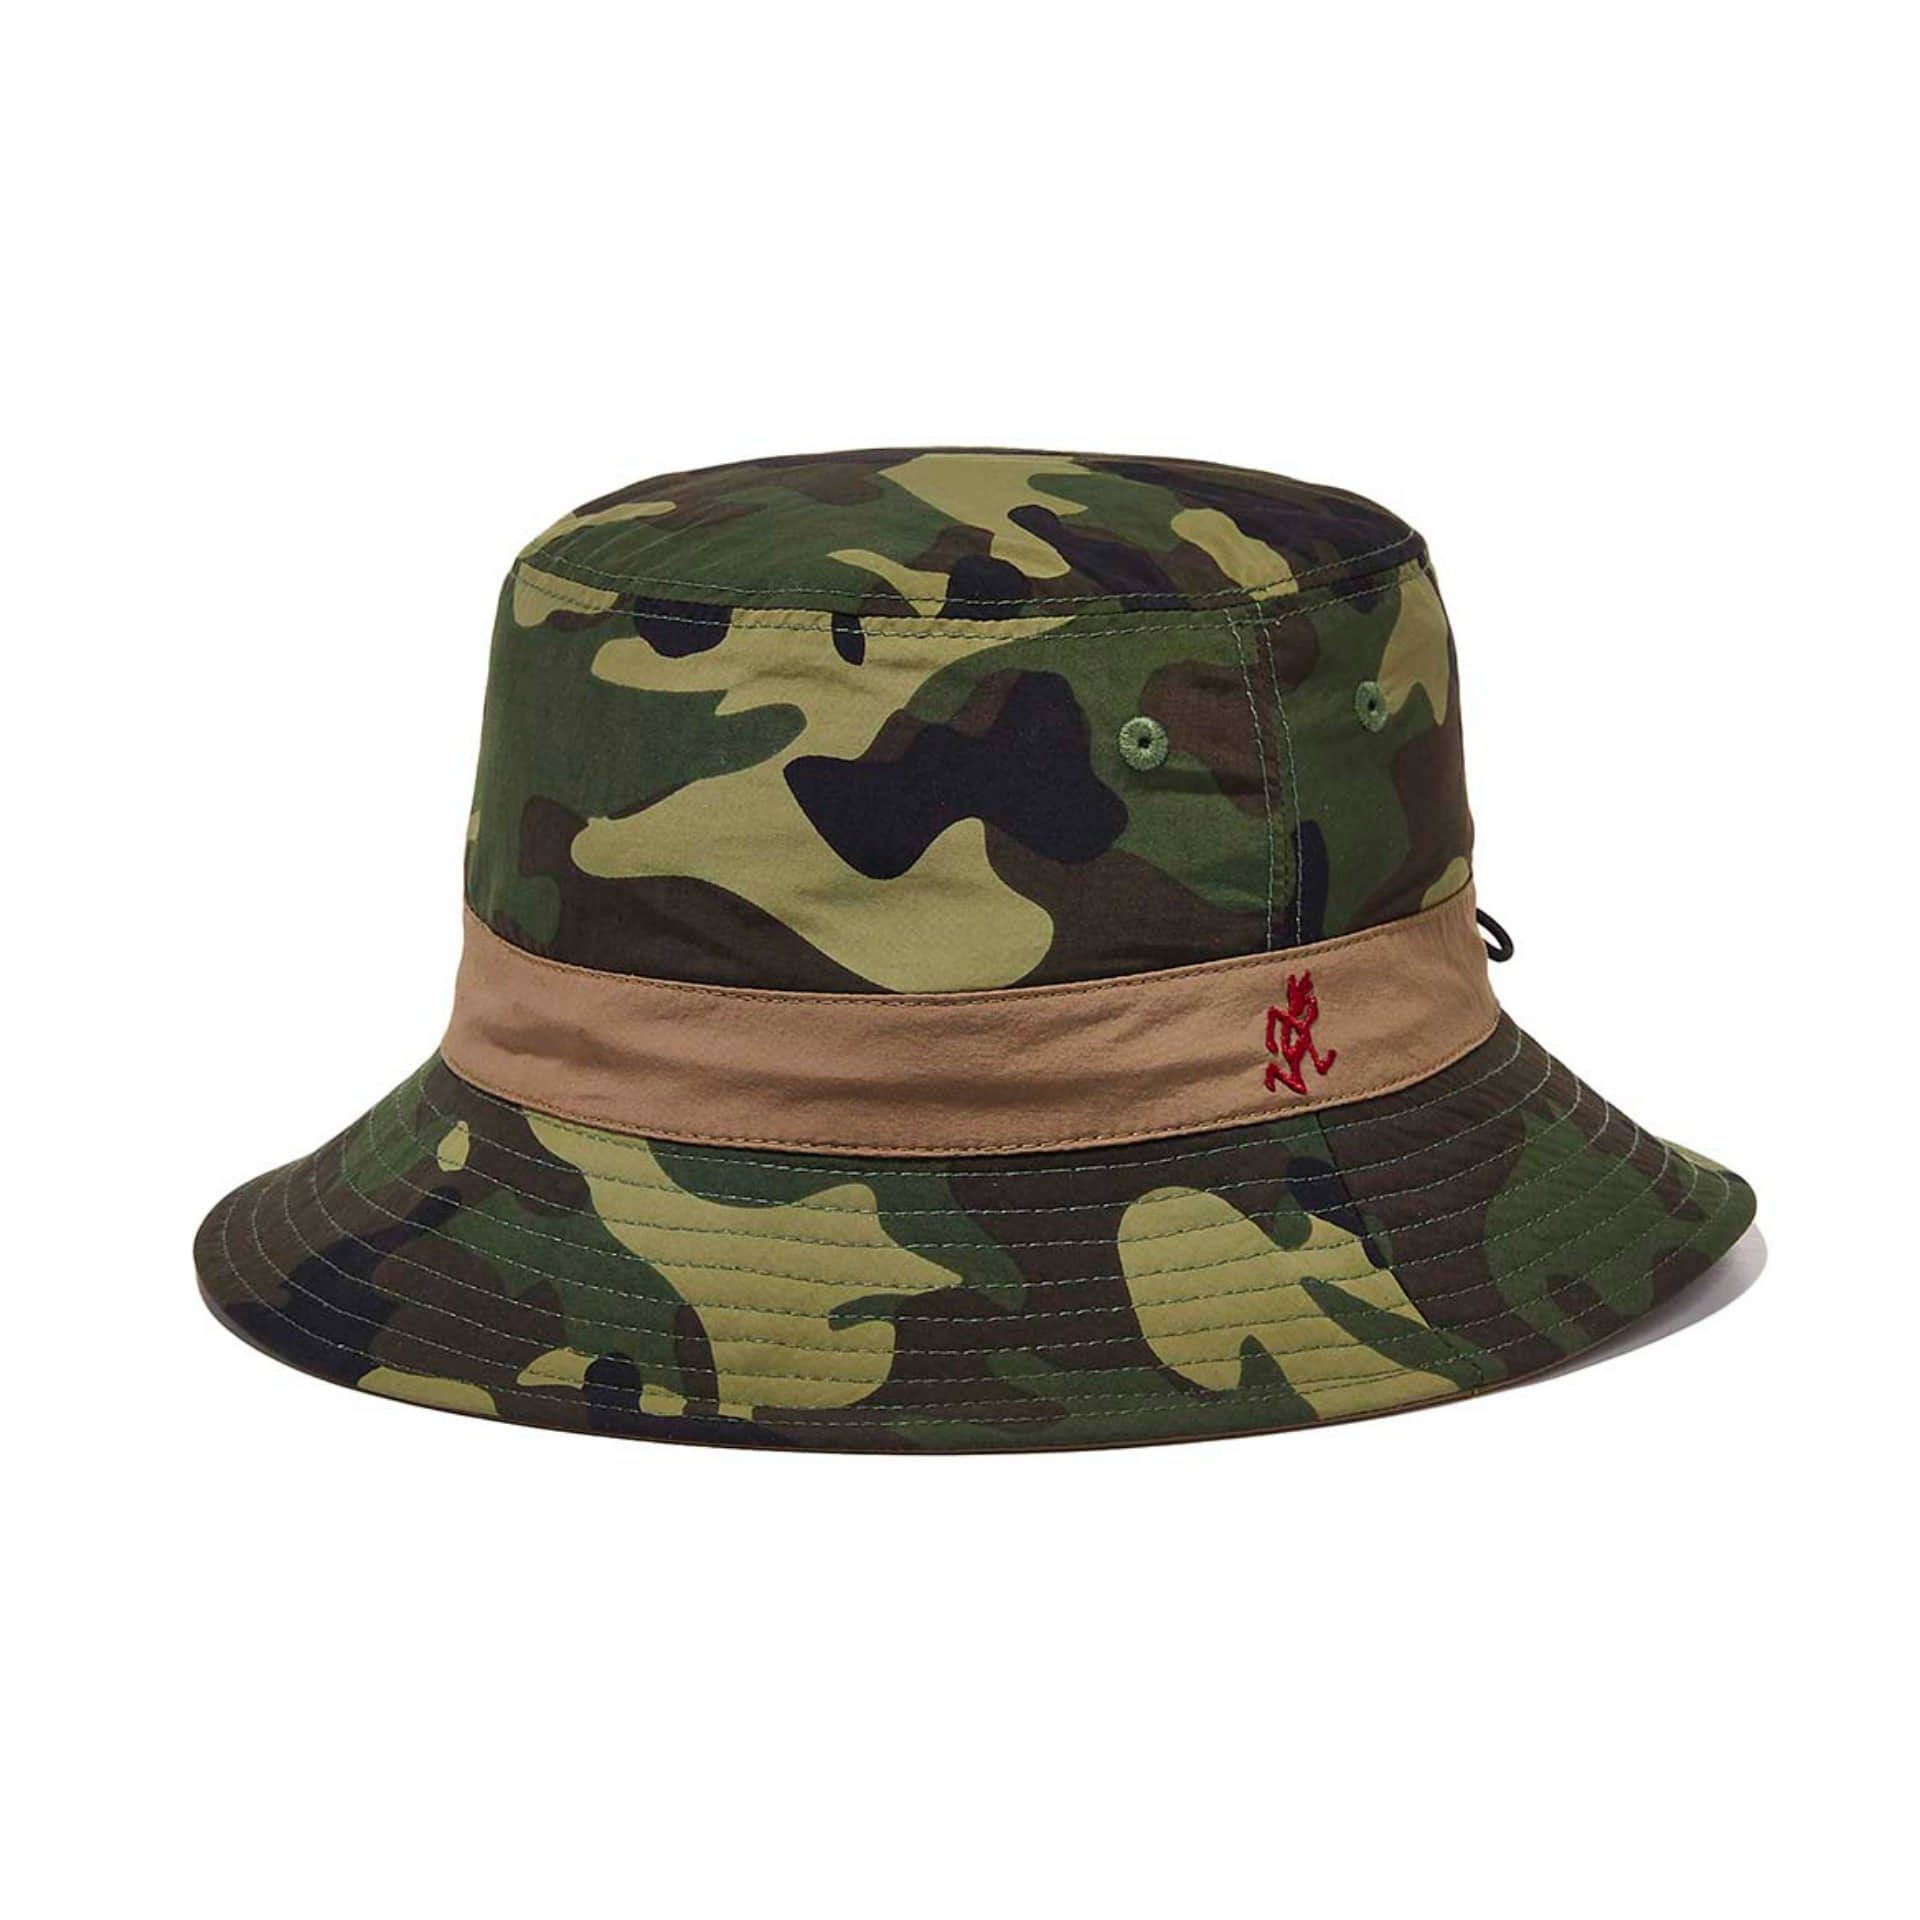 SHELL REVERSIBLE HAT(CAMO x TAN)